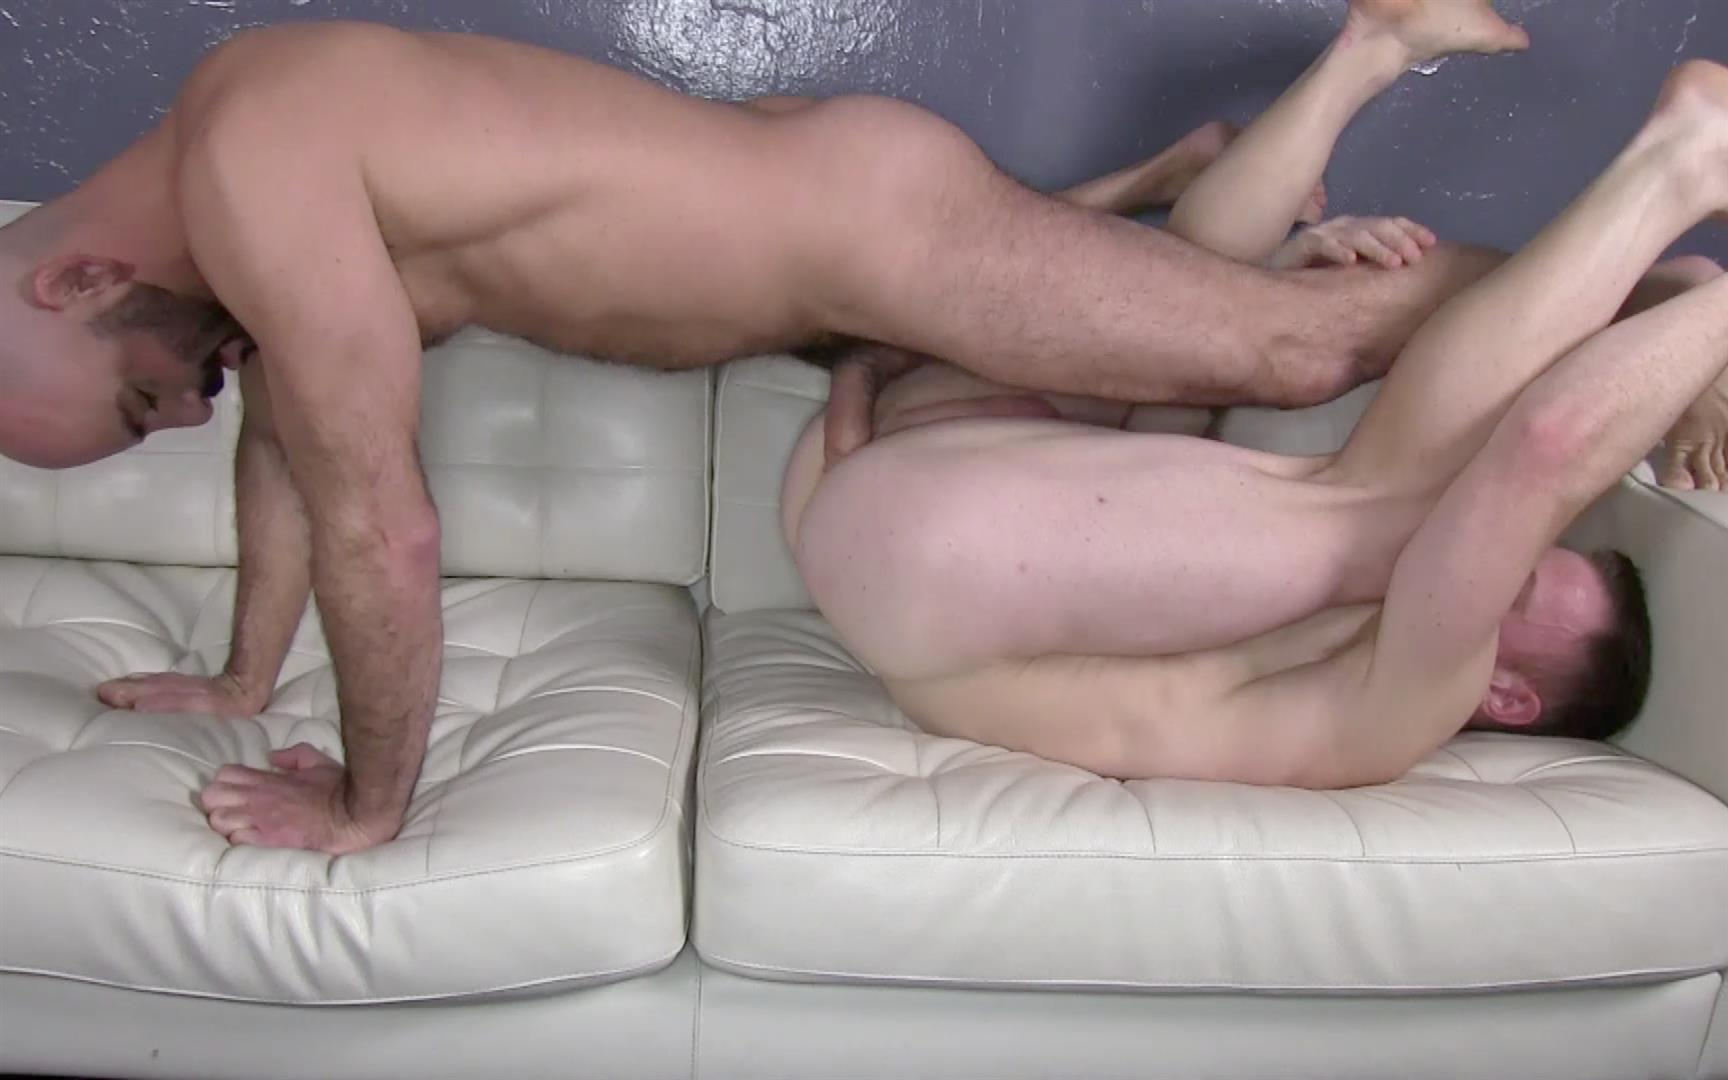 Raw-Fuck-Club-Adam-Russo-and-Saxon-West-masculine-guys-barebacking-Amateur-Gay-Porn-2 Red Headed Muscle Hunk Saxon West Takes A Big Raw Cock Up The Ass